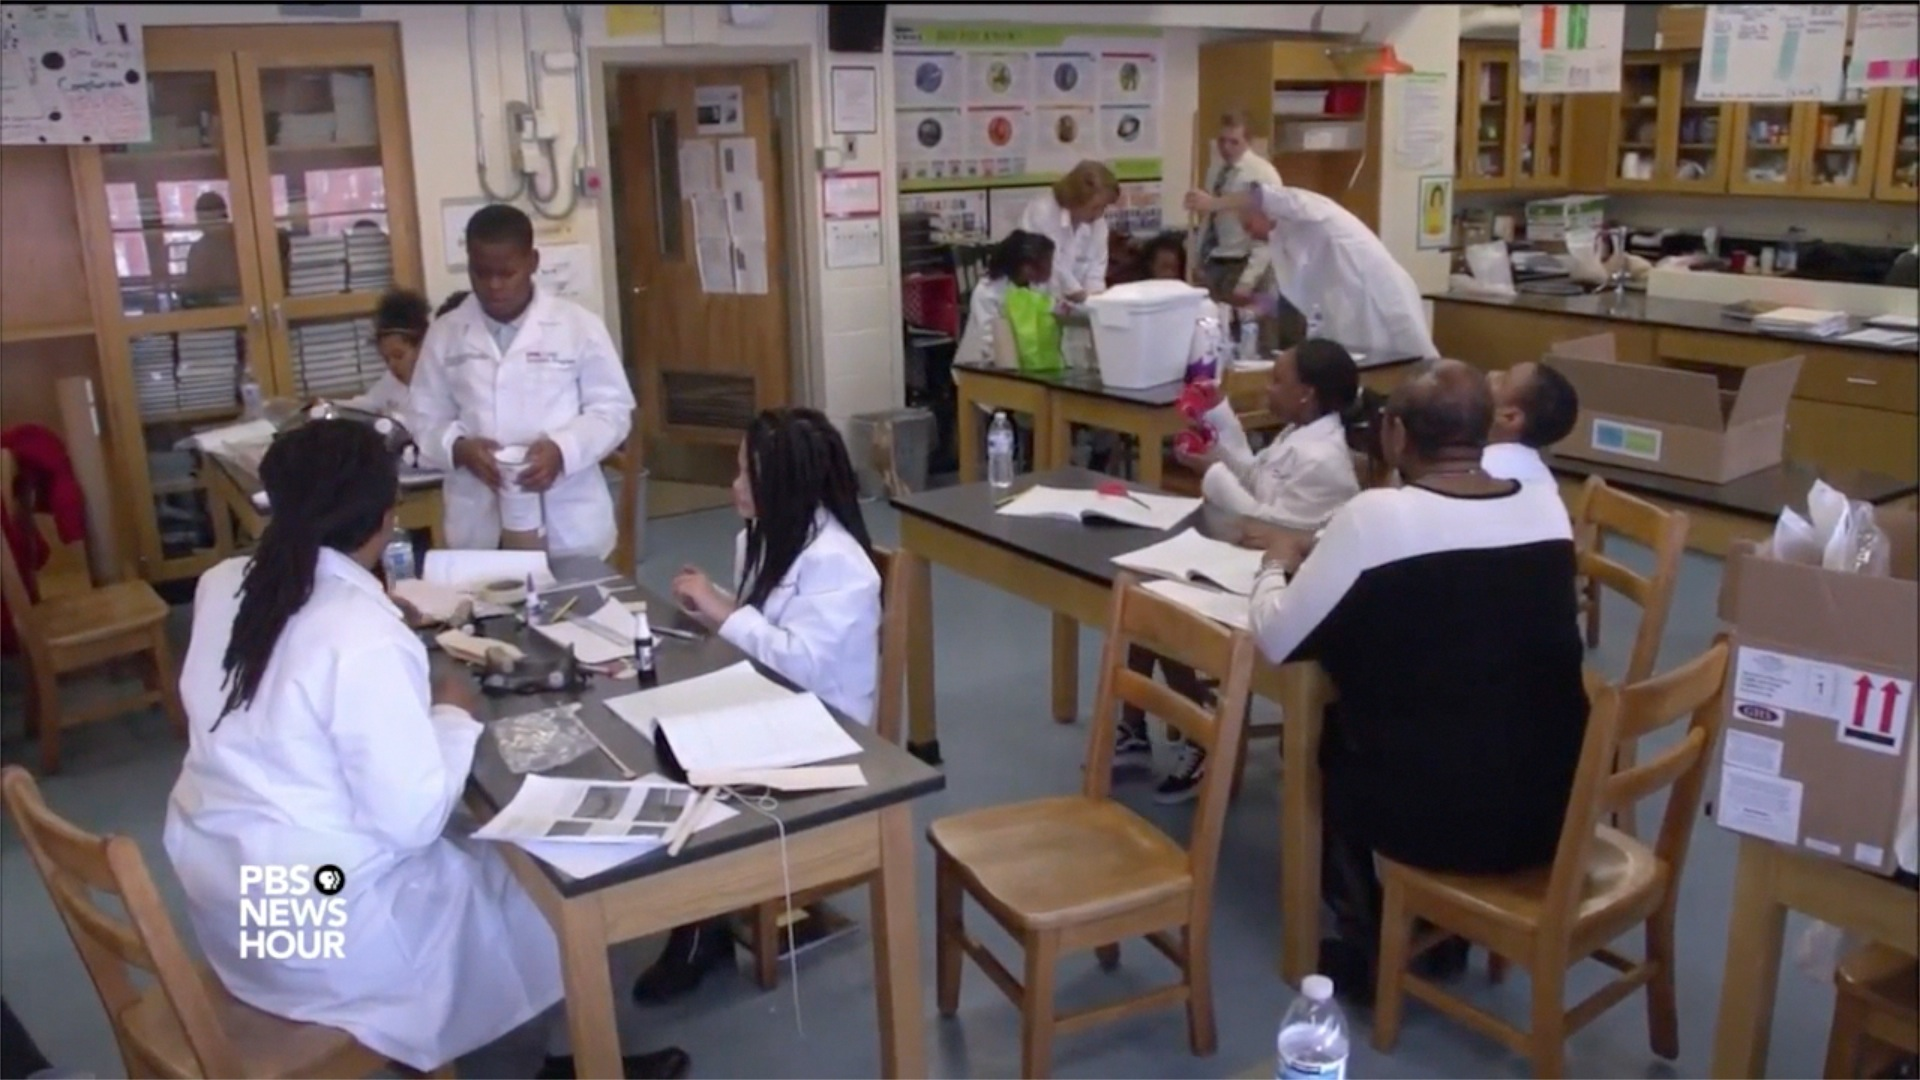 CURE Scholars at Franklin Square Elementary/Middle School work on science projects as shown in a video report by PBS NewsHour. Core team members for the CURE Scholars Program include Brian Sturdivant, MSW, far left, and Executive Director Robin Saunders, EdD, MS, mentoring a student at a table, far right.